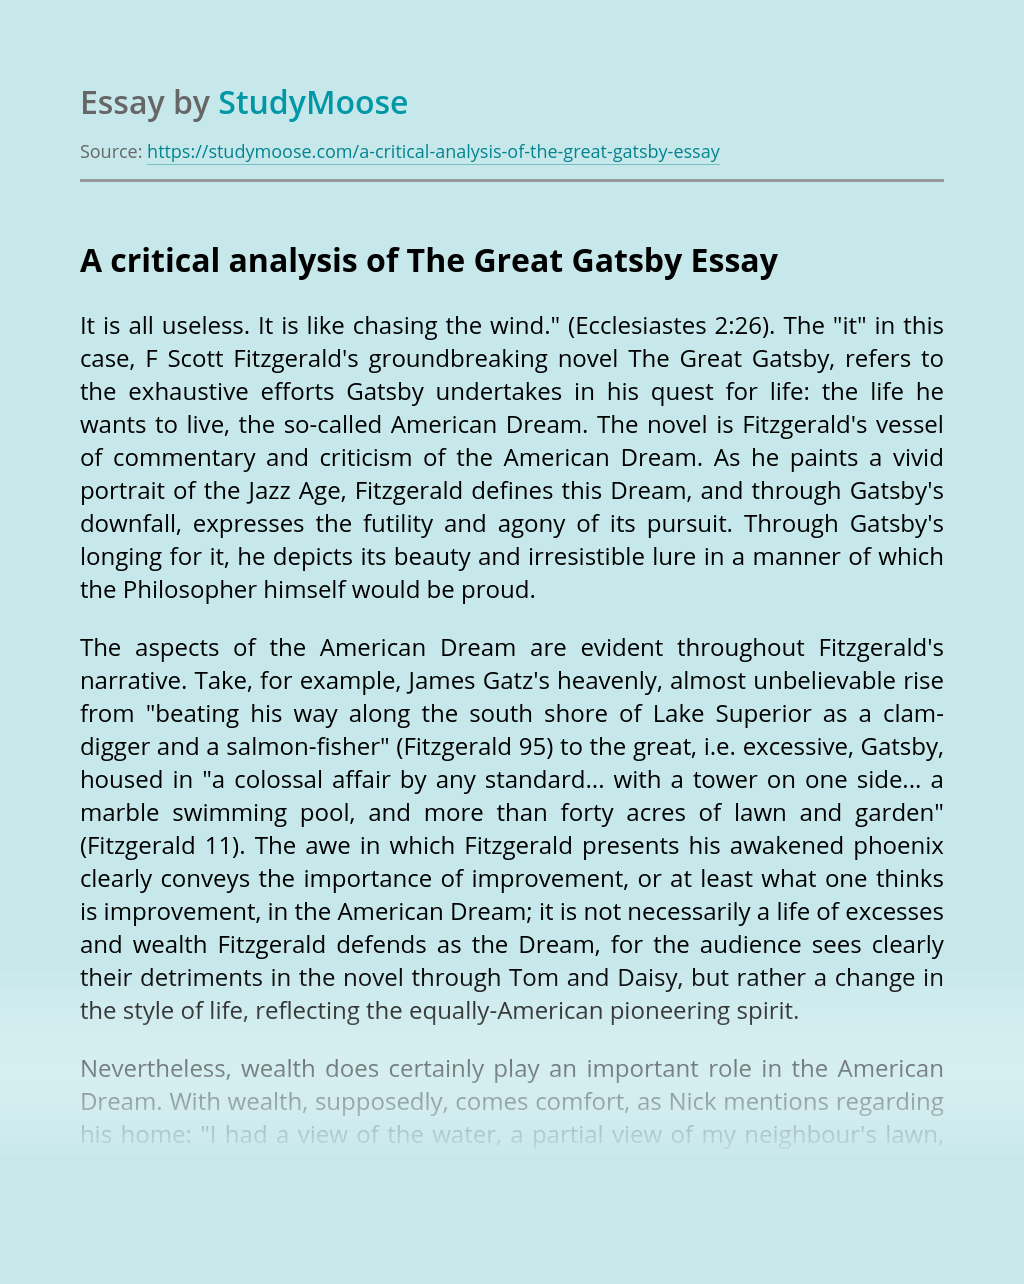 A critical analysis of The Great Gatsby